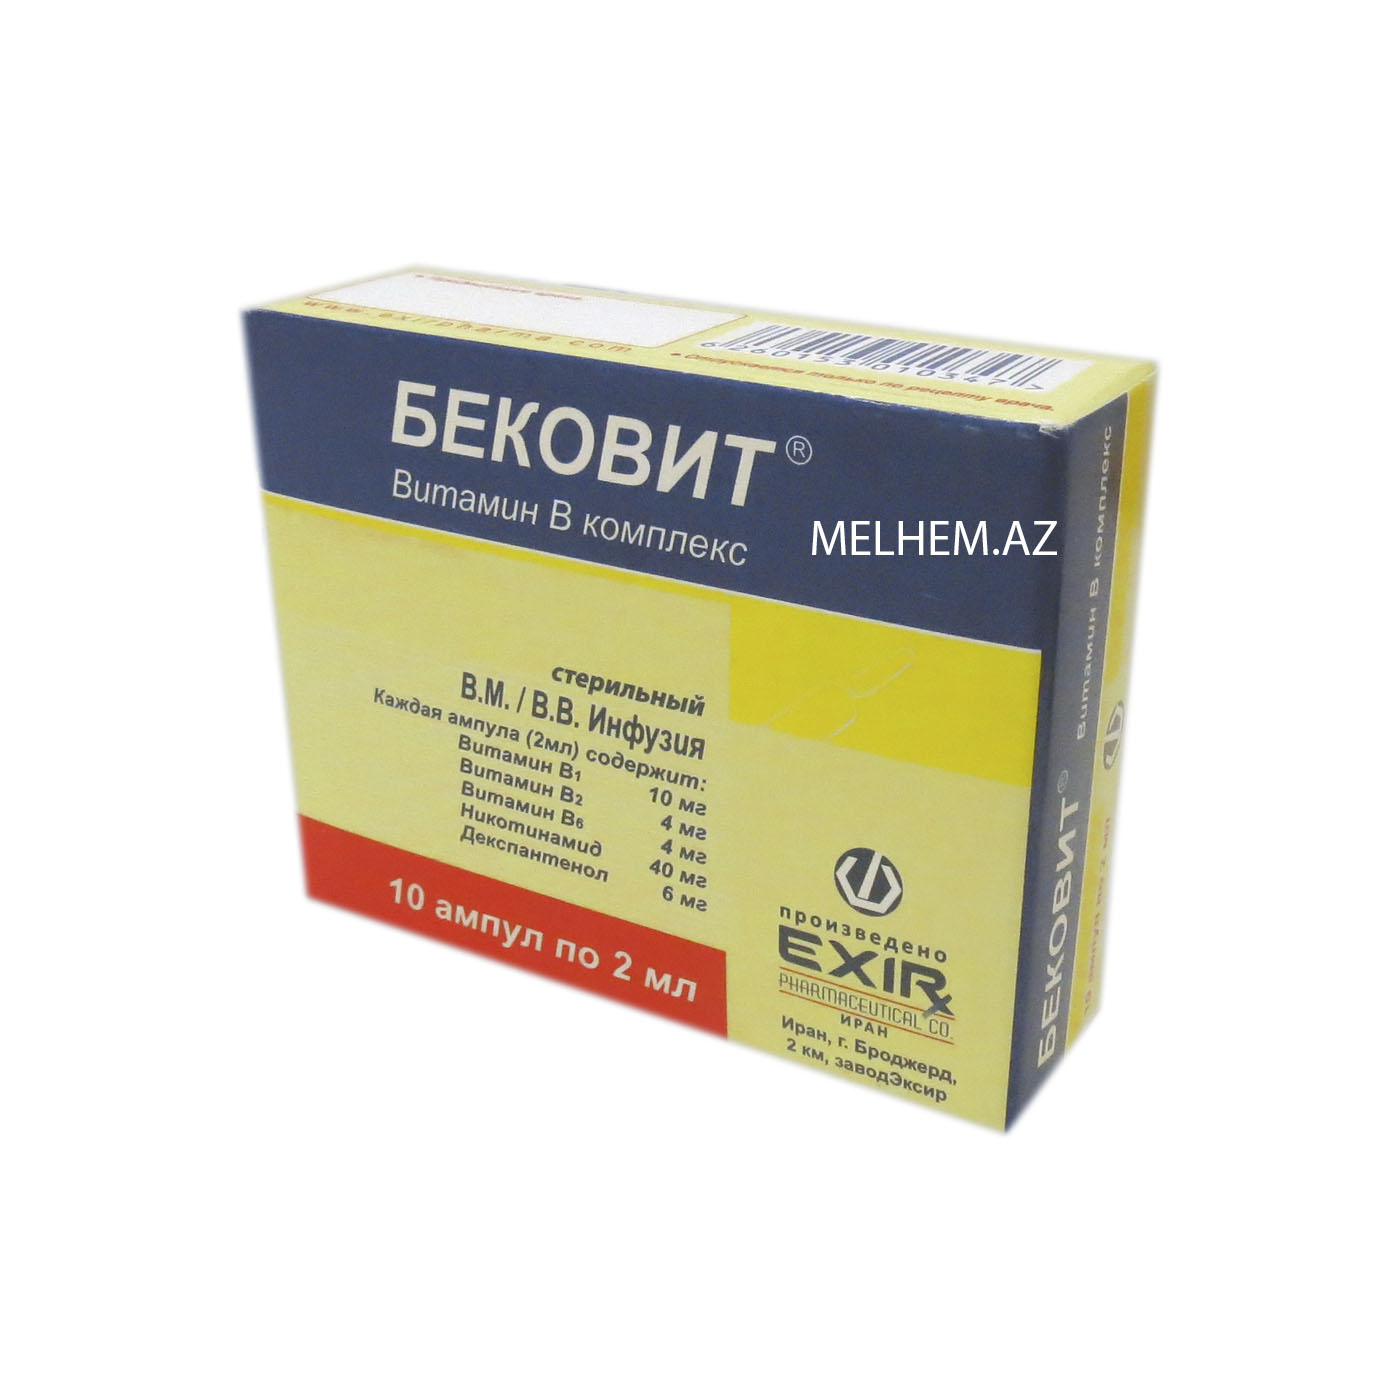 BECOVIT 2 ML